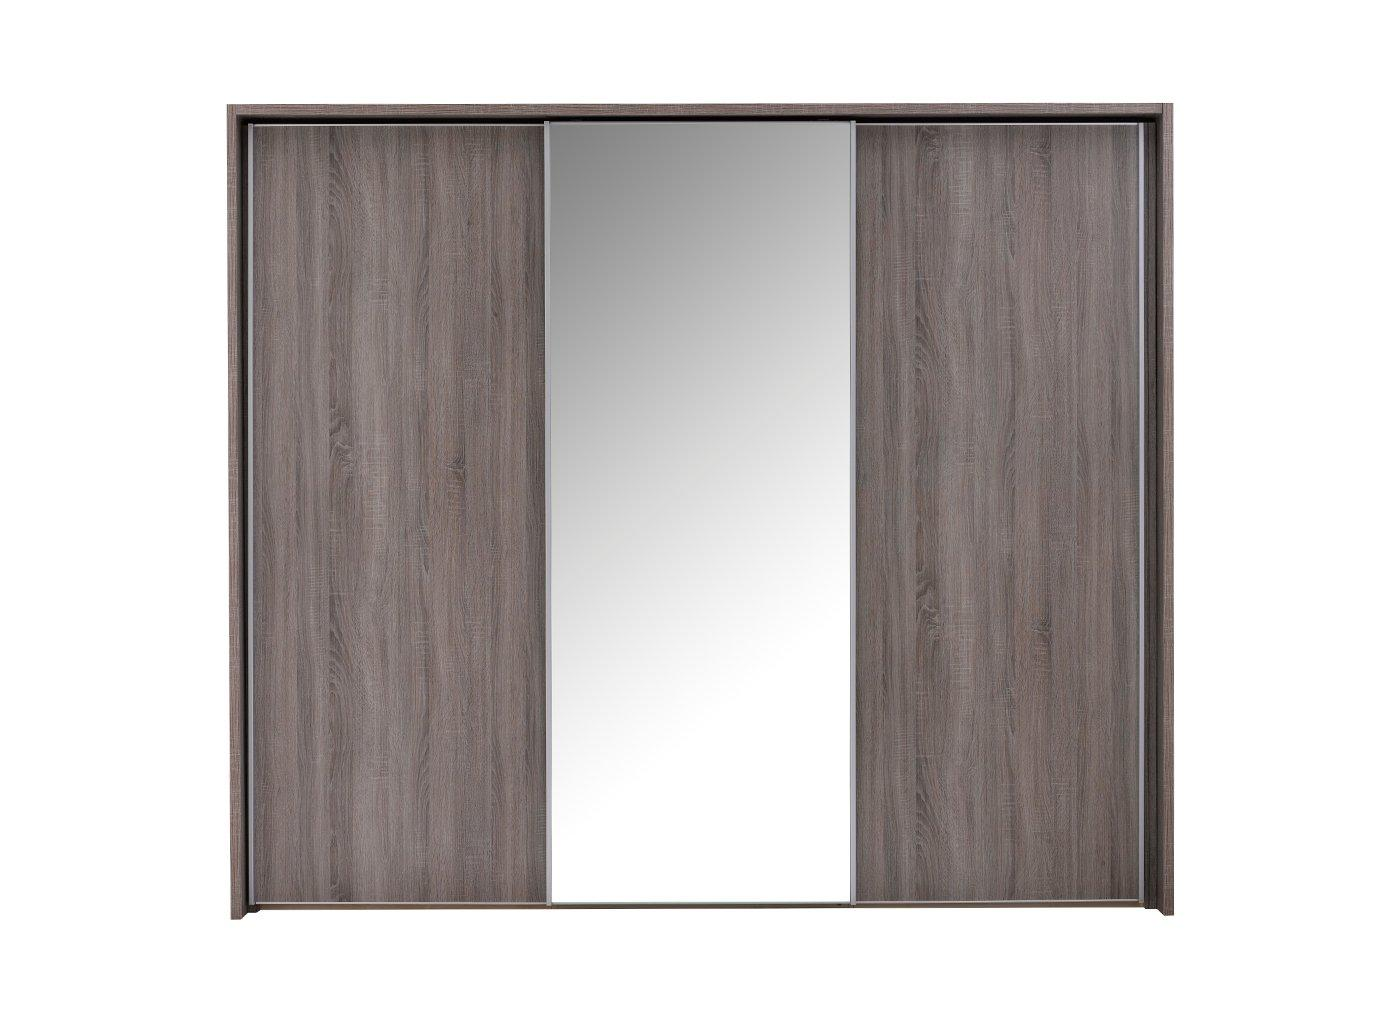 Melbourne 3 Mirror Door Sliding Wardrobe – Oak (£999)